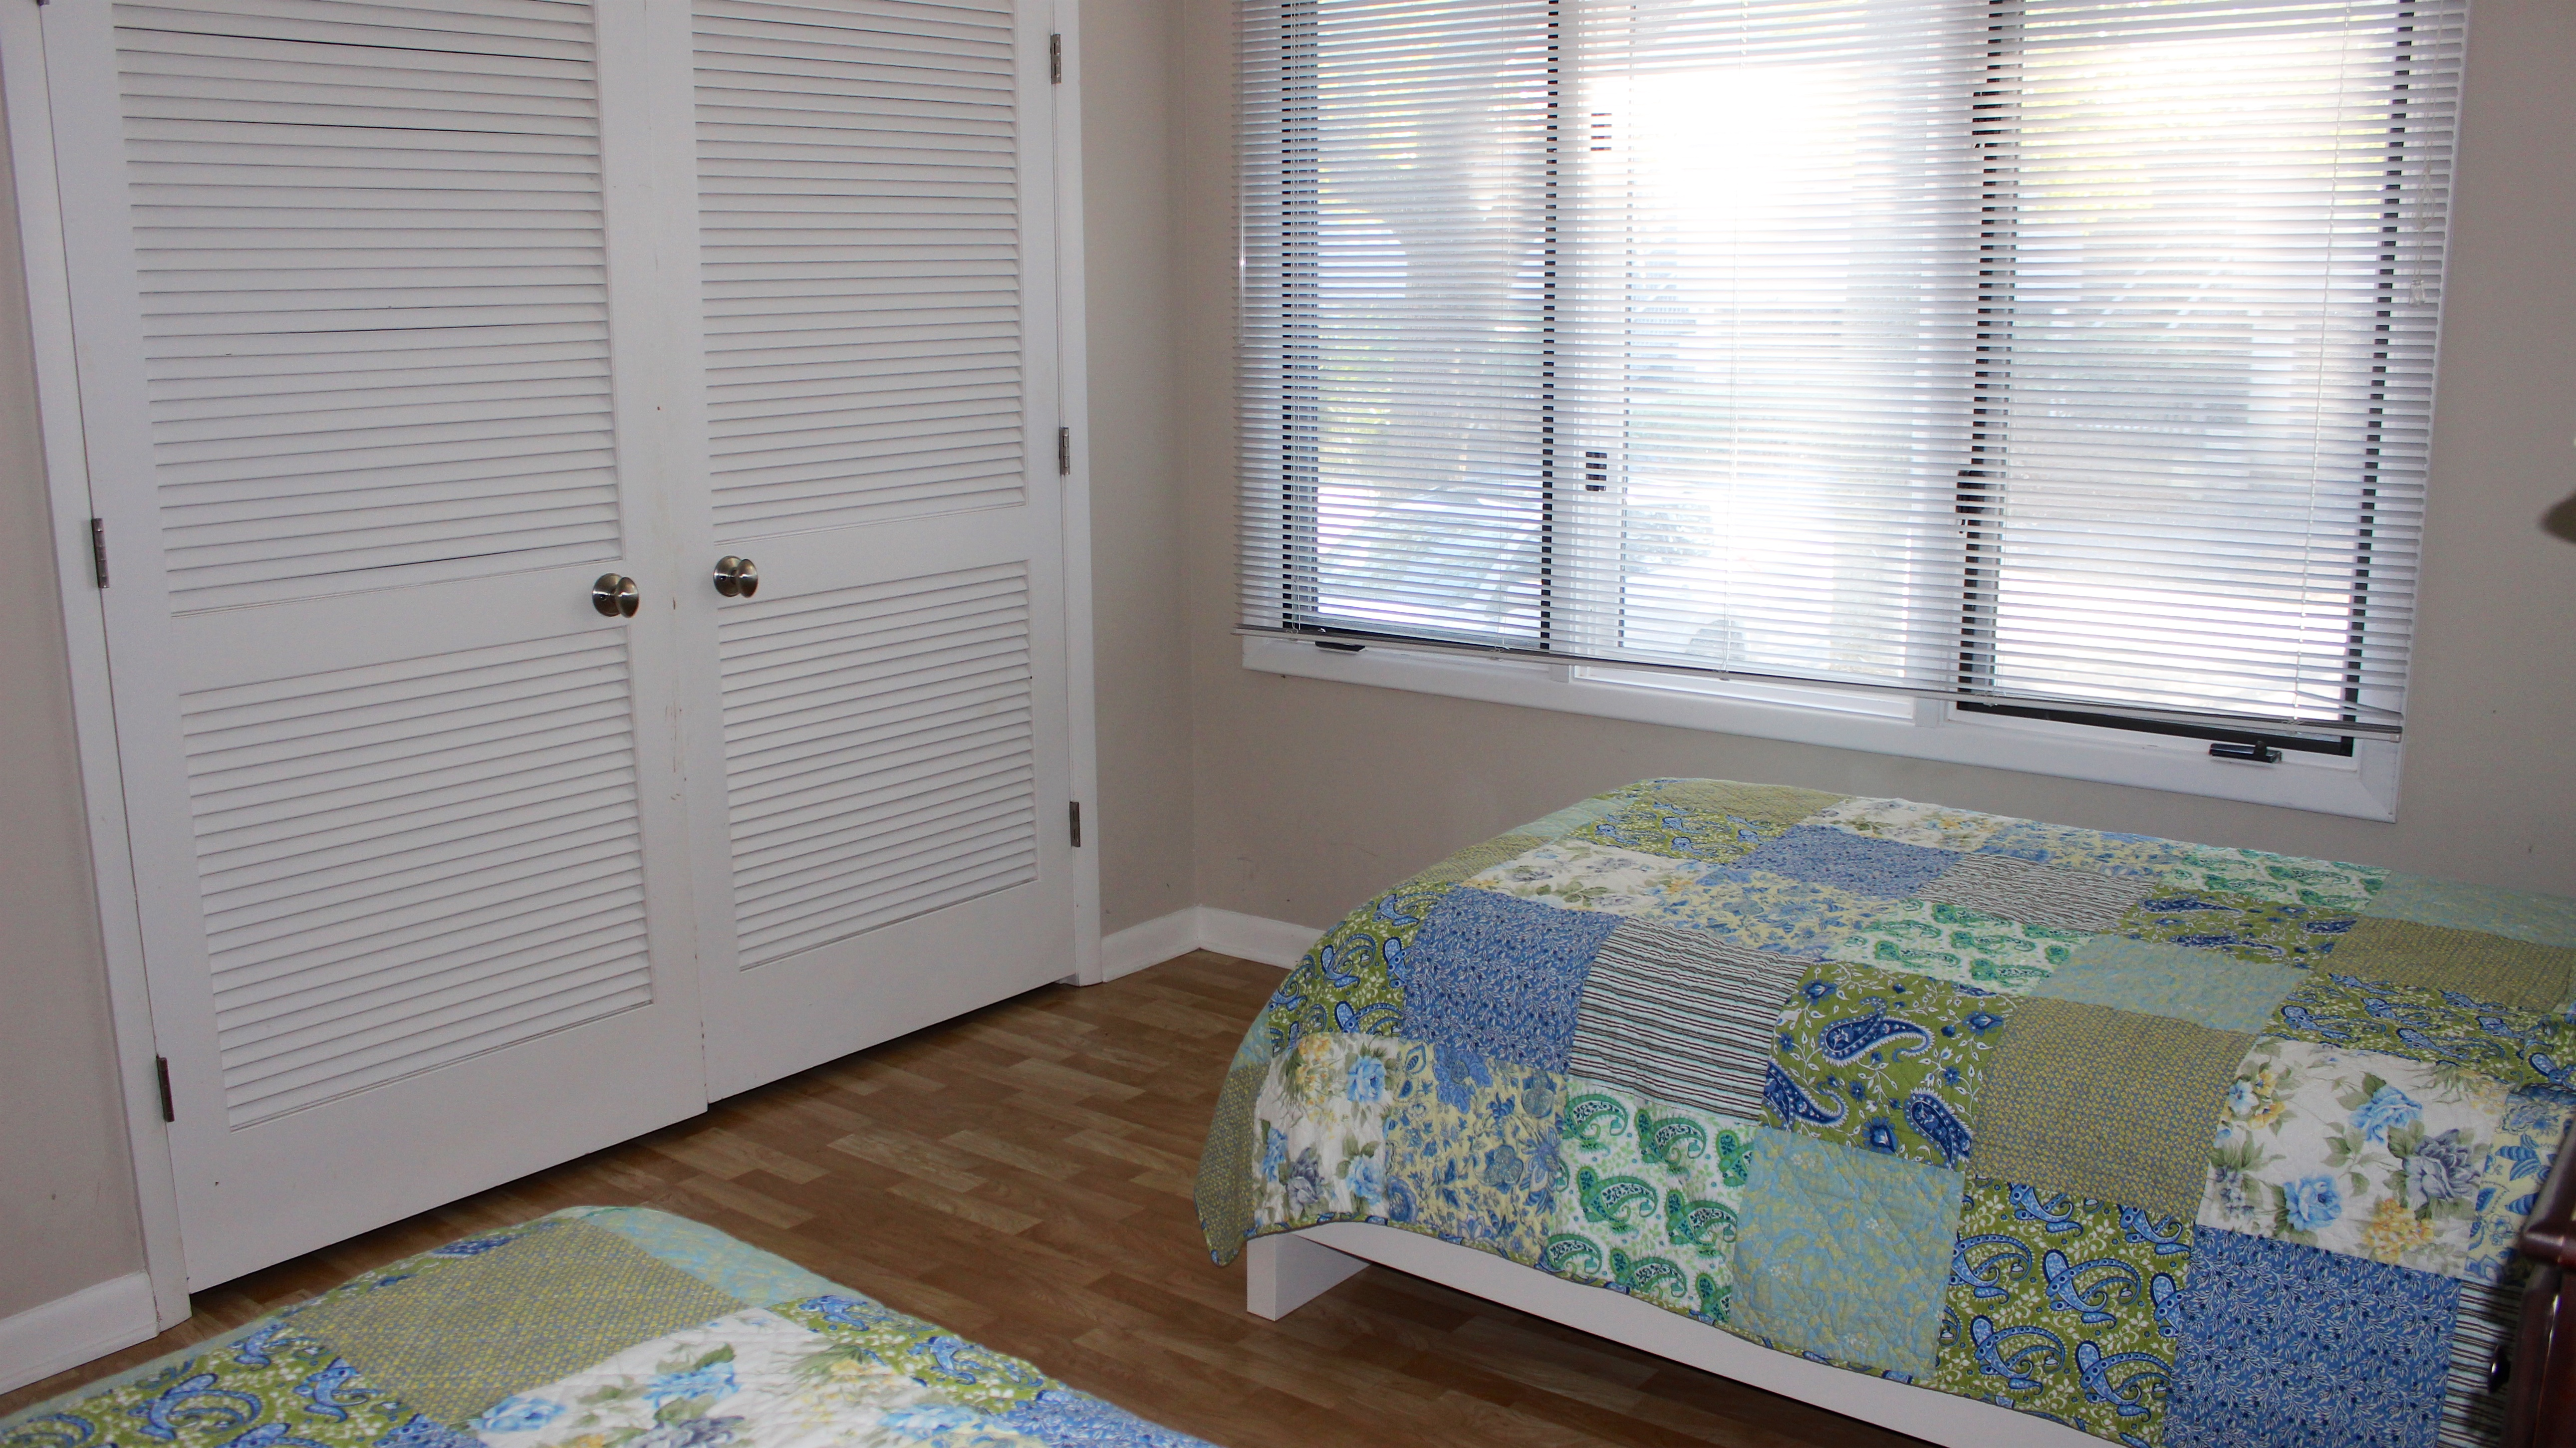 The 2nd bedroom has a large closet and windows allowing sun.